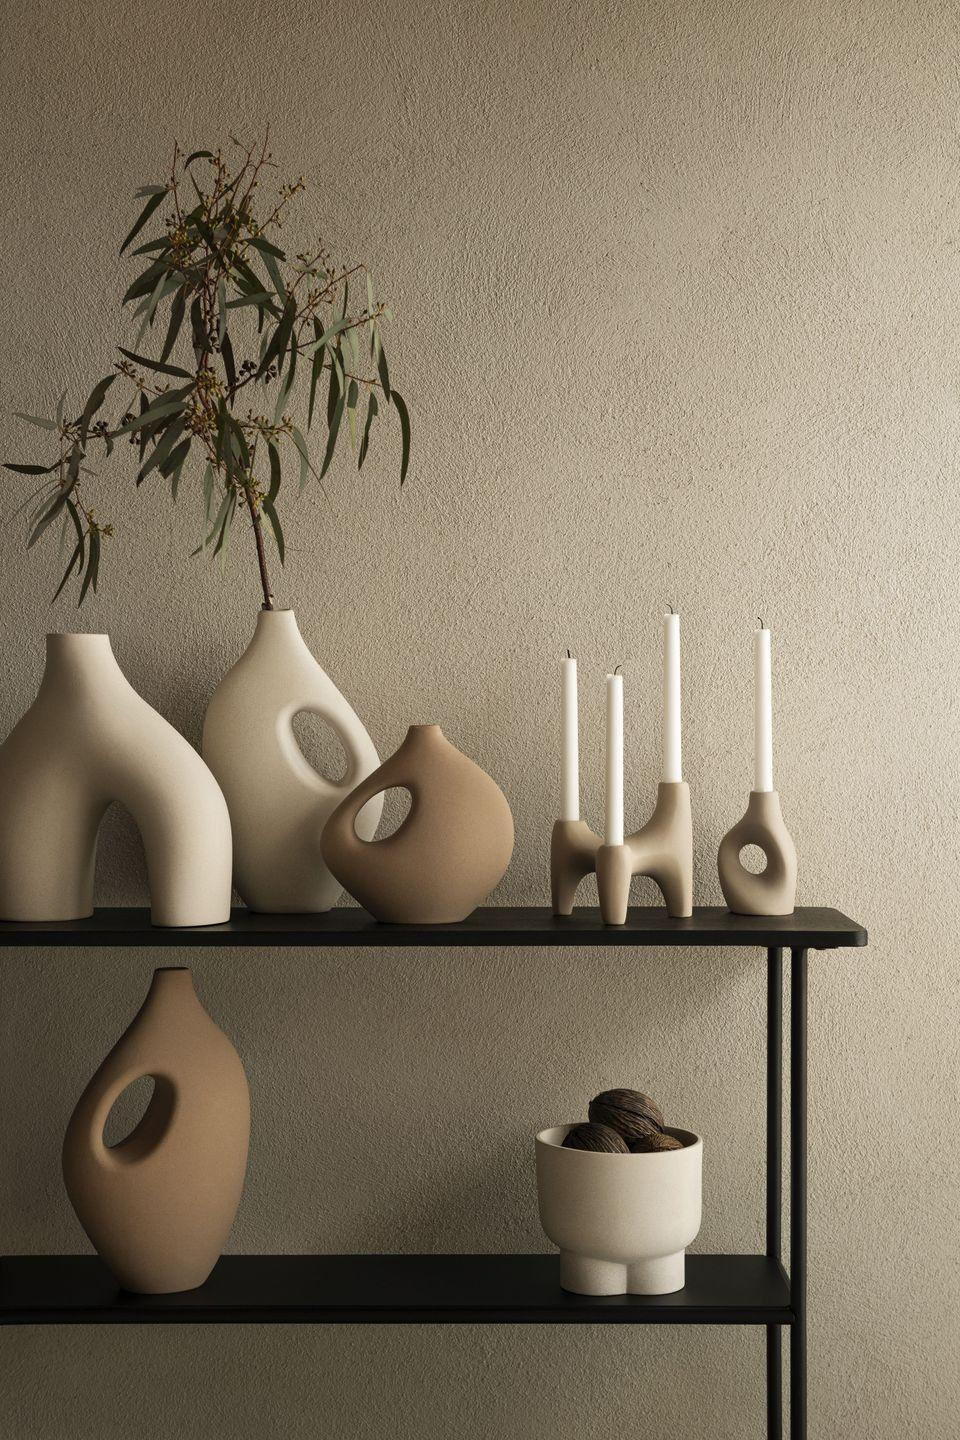 """<p>Create art out of your vases by adding these beautifully glazed ceramic pieces in random groupings around your home. Not only will they add an artistic touch, but they'll also mean you can get away with fewer pieces of art on the walls, helping to set up an inviting, decluttered space to relax in. </p><p><a class=""""link rapid-noclick-resp"""" href=""""https://go.redirectingat.com?id=127X1599956&url=https%3A%2F%2Fwww2.hm.com%2Fen_gb%2Fhome%2Fshop-by-product%2Fdecorations.html&sref=https%3A%2F%2Fwww.prima.co.uk%2Fhome-ideas%2Fhome-accessories-buys%2Fg37325647%2Fhandm-home-autumn-collection%2F"""" rel=""""nofollow noopener"""" target=""""_blank"""" data-ylk=""""slk:Shop home decor at H&M"""">Shop home decor at H&M</a></p>"""